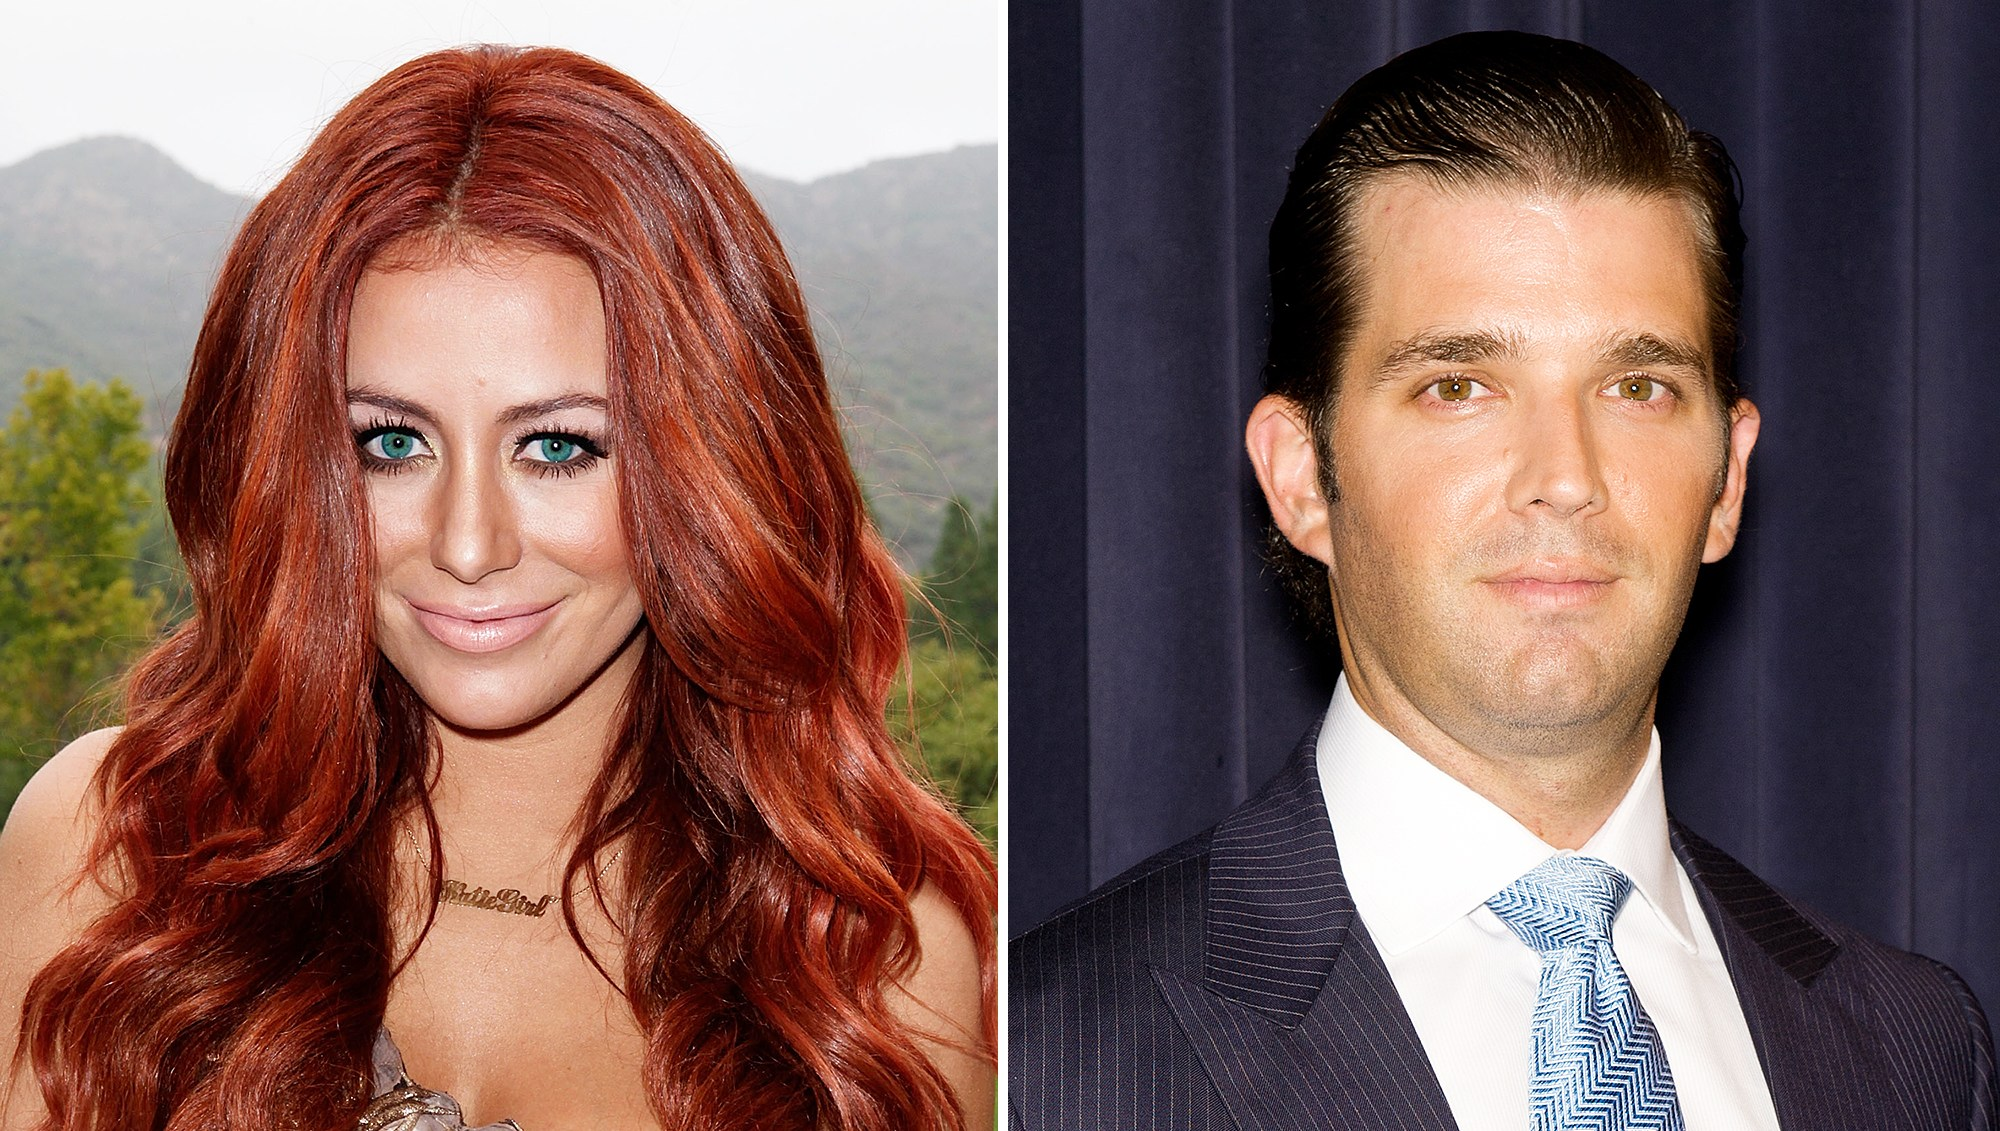 Aubrey O'Day Admits Crush on Donald Trump Jr